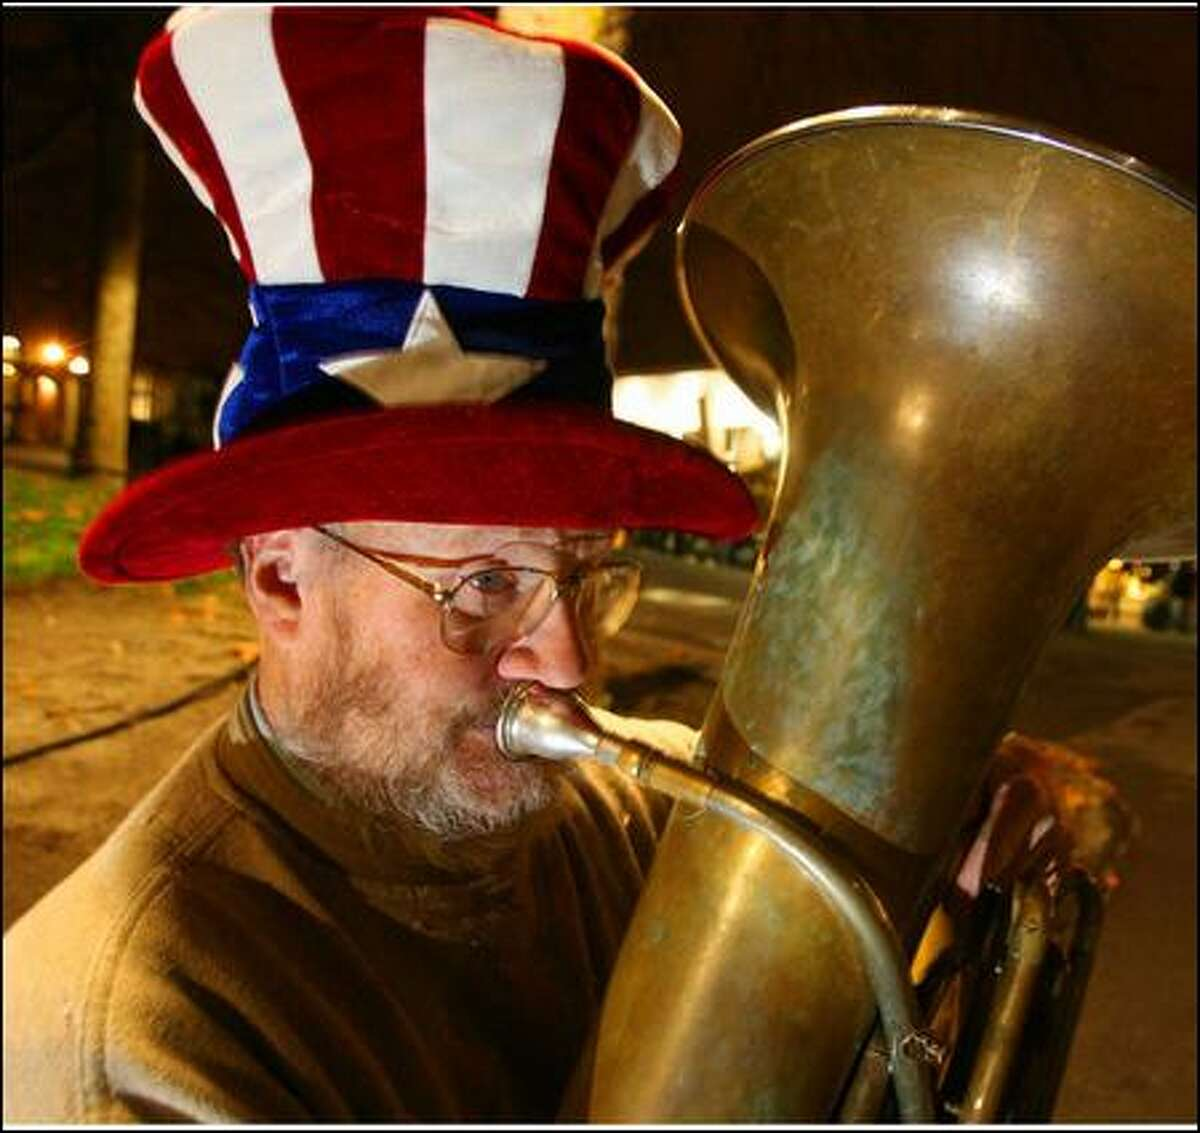 """Tuba Man for years played outside sporting events around the city, blowing dirges when the home team lost and cheerful tunes to follow victories, just for the joy of meeting the crowd. """"That's what I value most,"""" he said. """"People."""""""